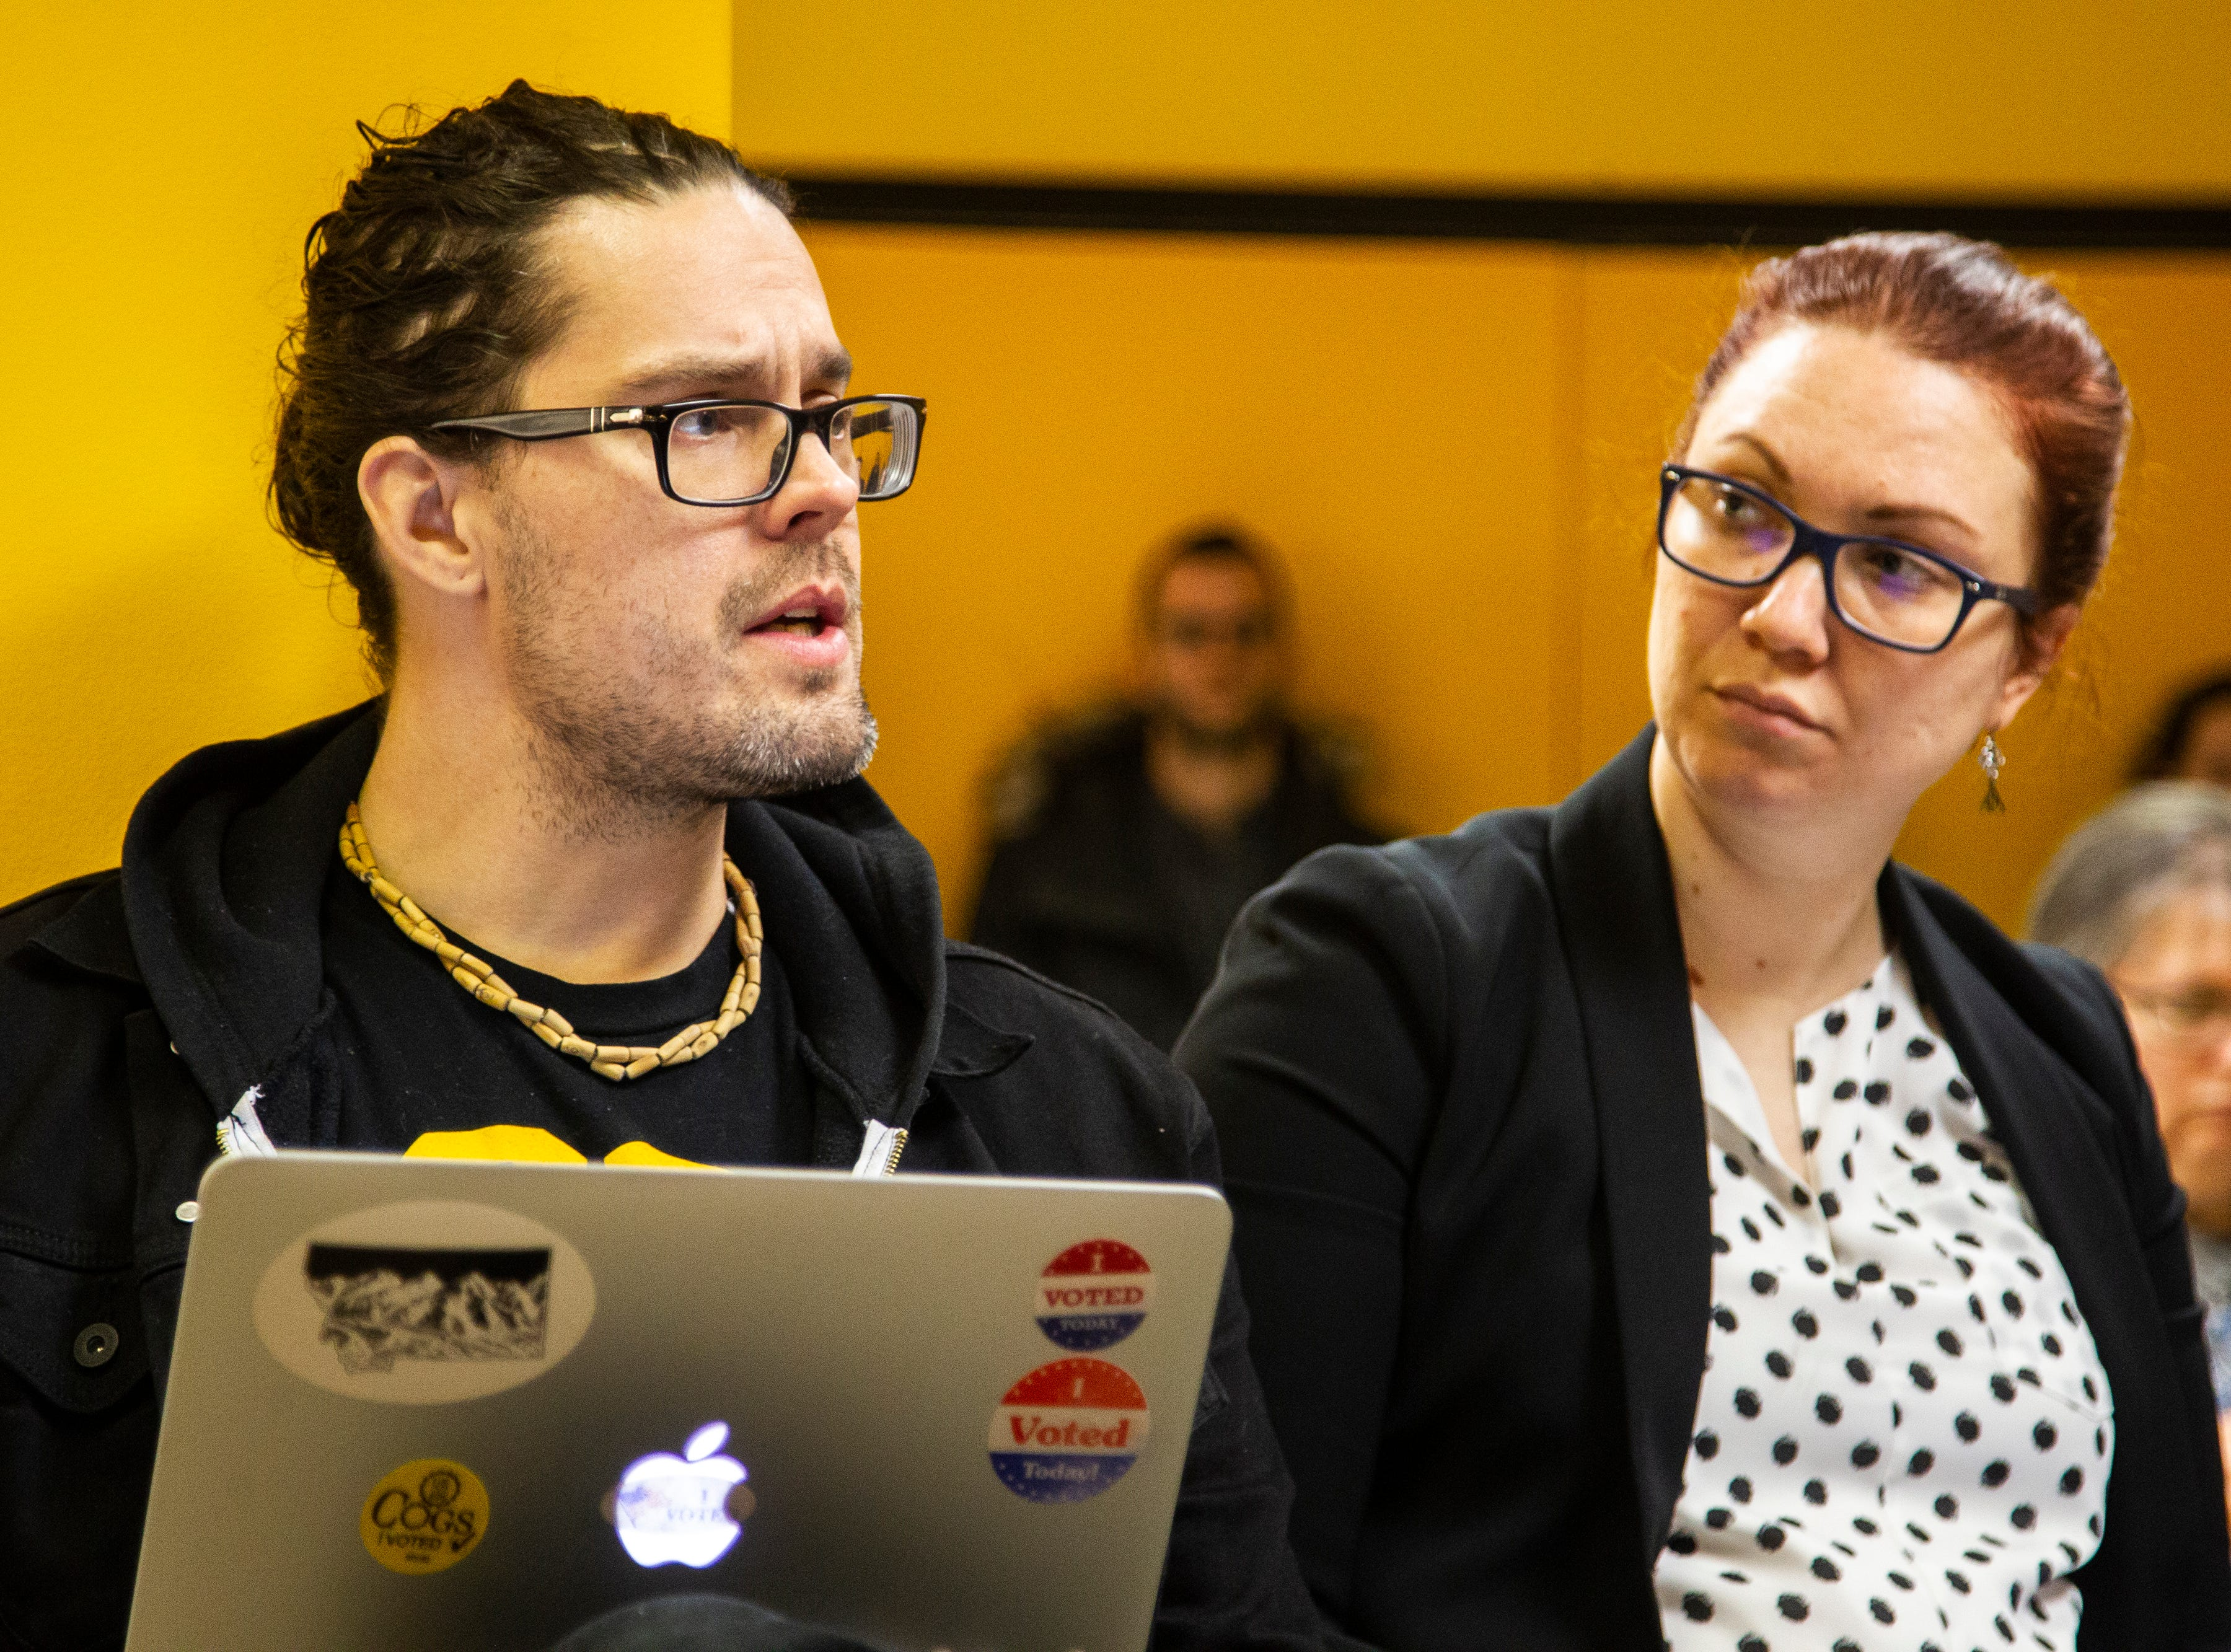 John Jepsen, a Campaign to Organize Graduate Student member, speaks after receiving a contract proposal from the Iowa Board of Regents while Kezia Walker-Cecil, a COGS blue-area steward, listens on Wednesday, Dec. 12, 2018, at the Iowa Memorial Union in Iowa City.